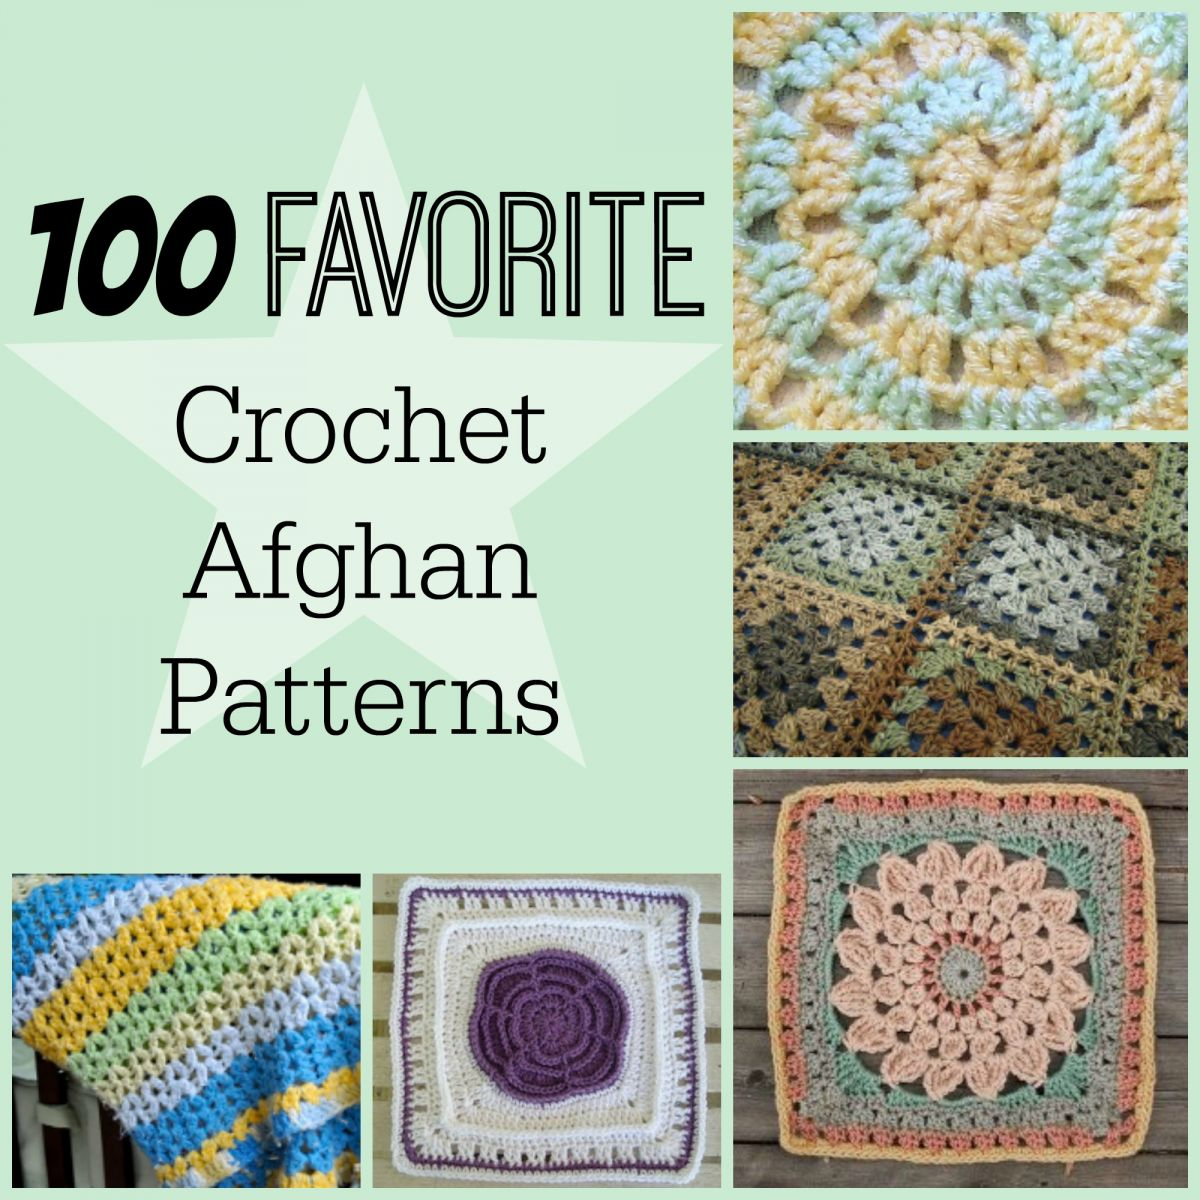 All Free Crochet Afghan Patterns : 100 Favorite Crochet Afghan Patterns ...